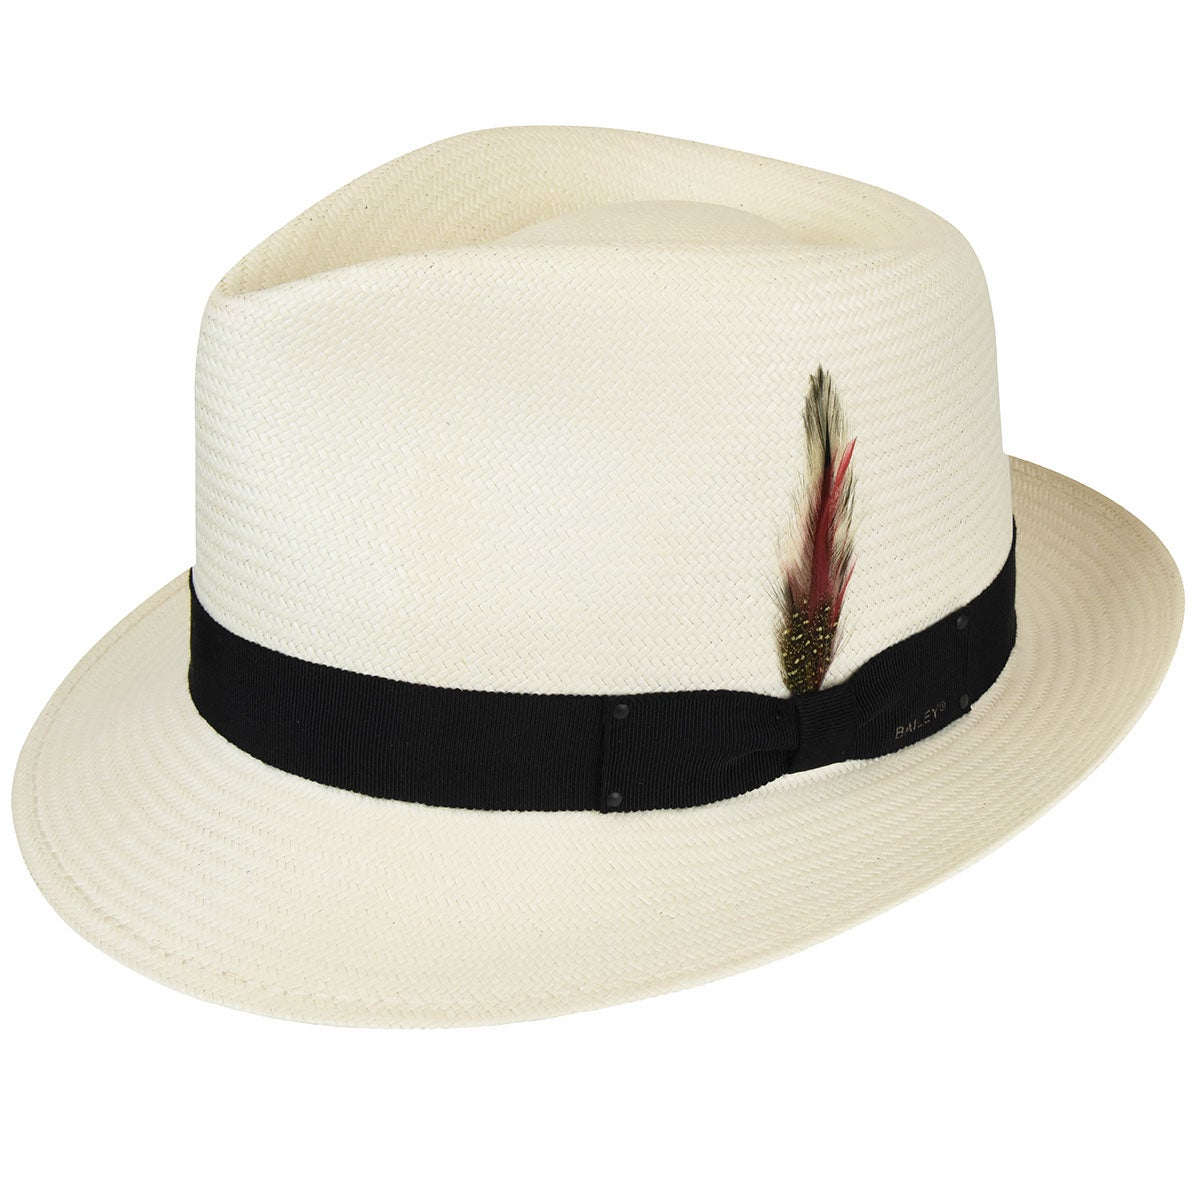 Bailey of Hollywood Guthrie Litestraw Fedora in Natural,Black